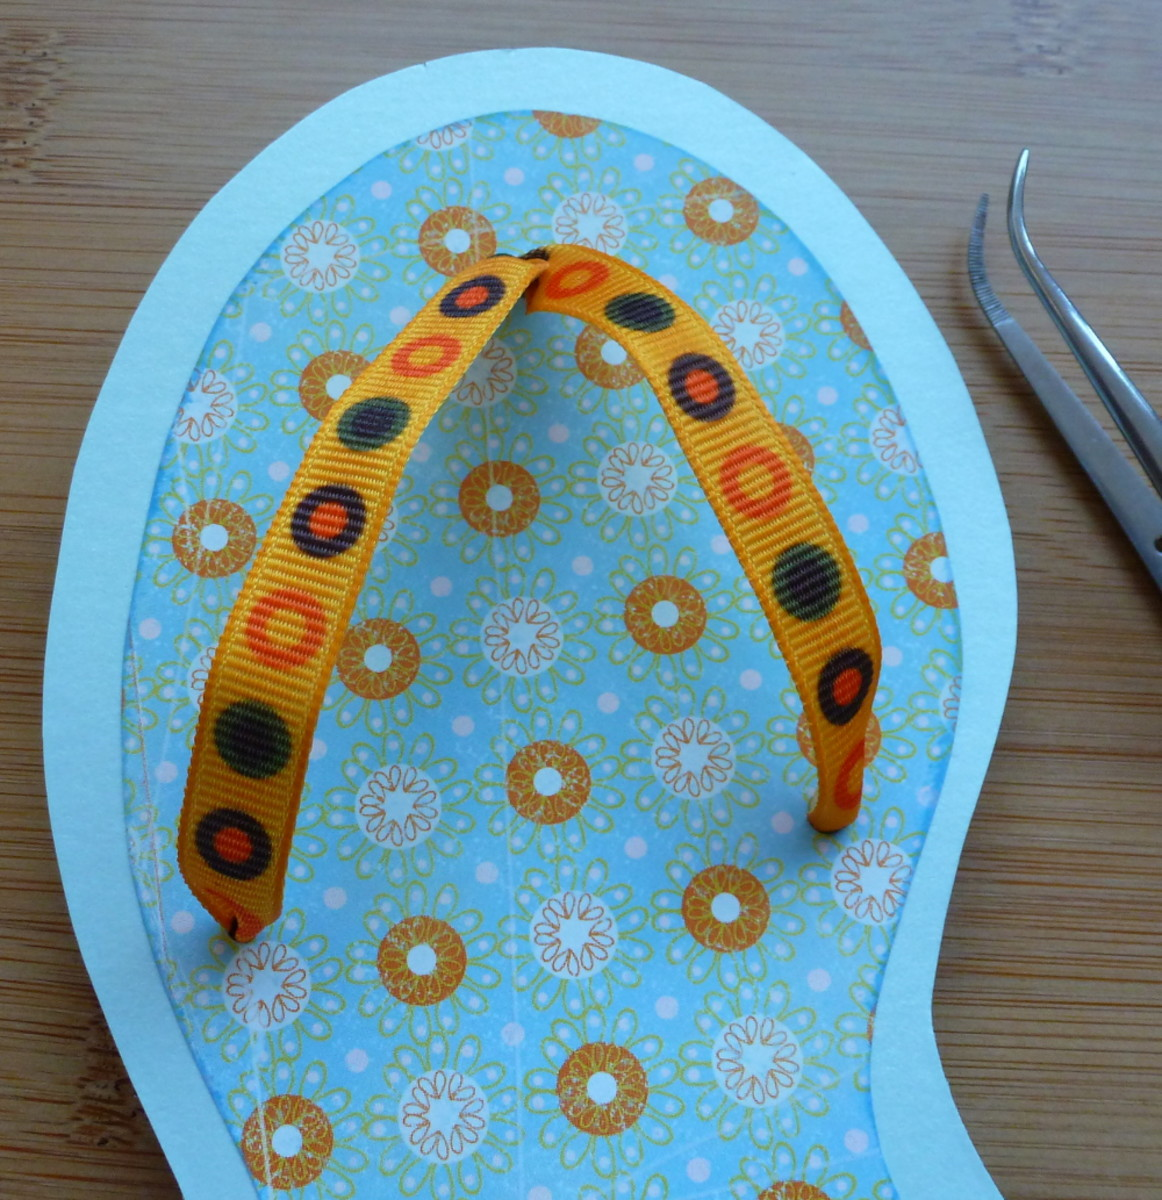 Putting the ribbon into the flip flop card summer craft tutorial how to.